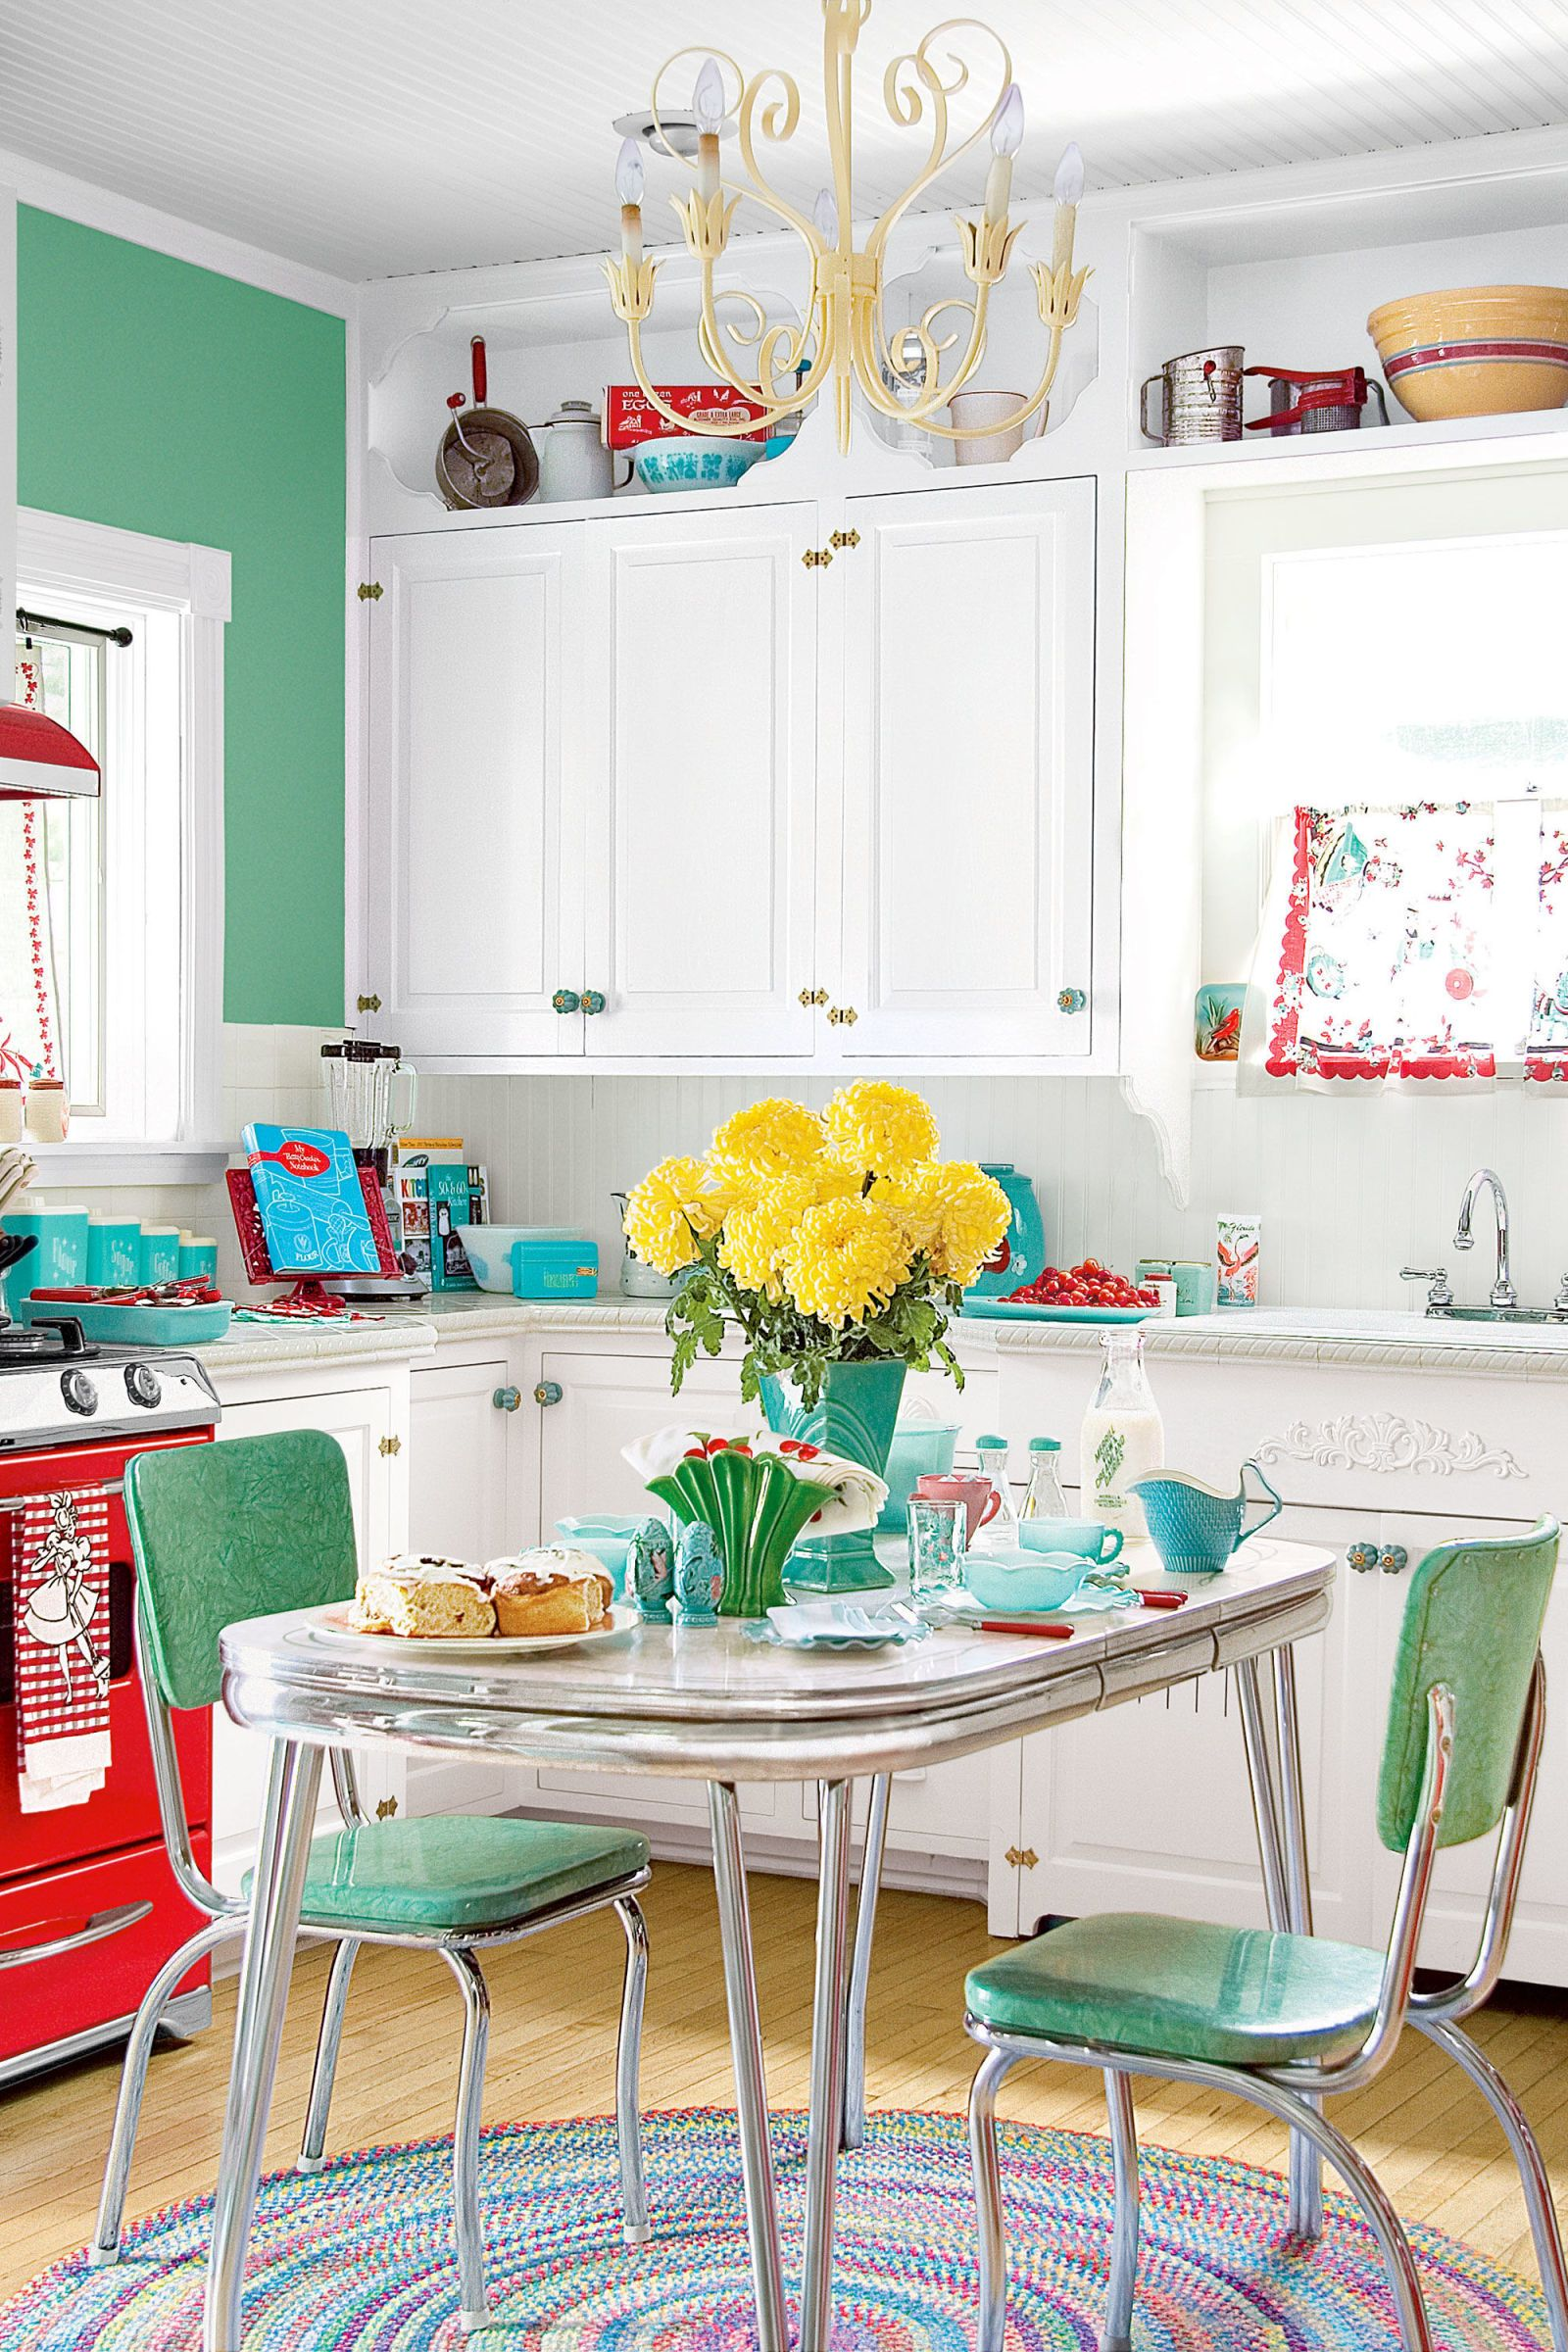 11 Retro Diner Decor Ideas for Your Kitchen | Red leather, Diners ...